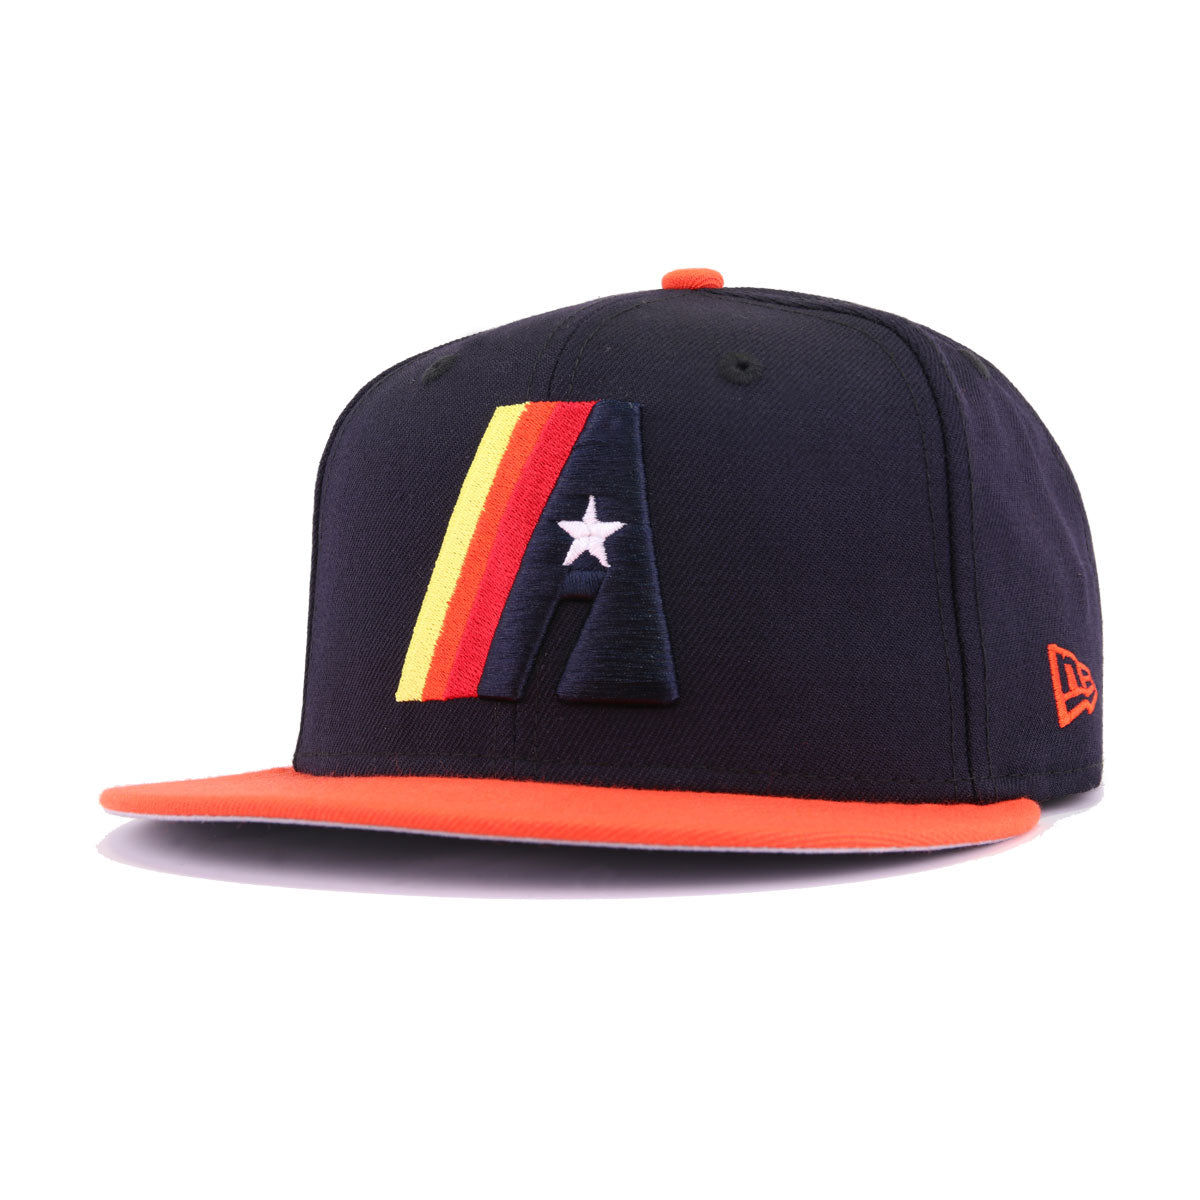 121aa1b7ac1 Houston Astros Navy Orangeade Retro New Era 9Fifty Snapback – Hat Heaven